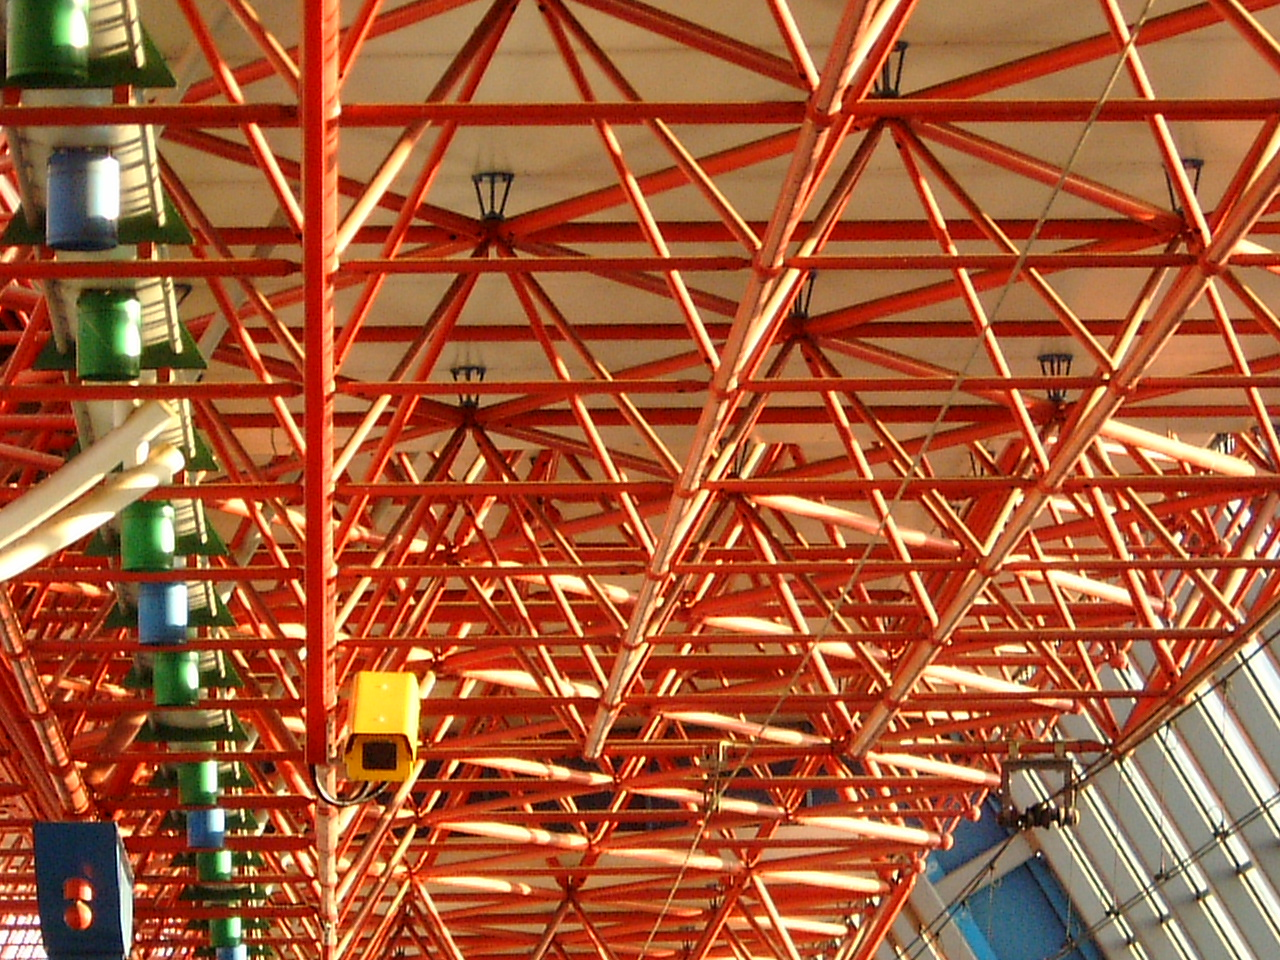 maartent pipes ceiling of a railway station construction red